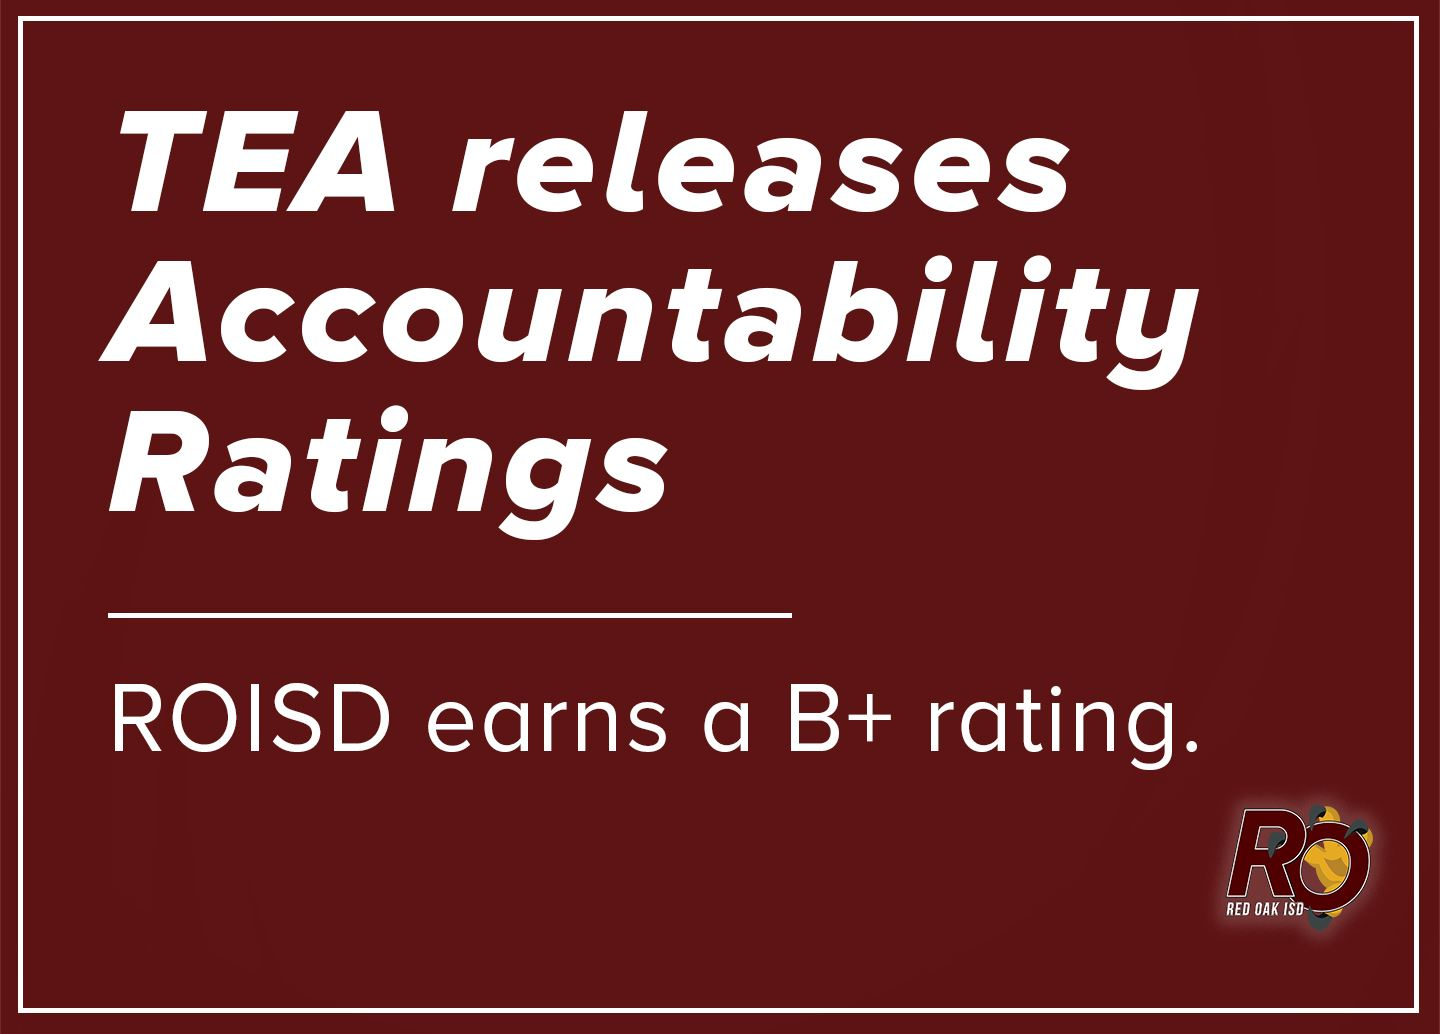 TEA releases accountability ratings. ROISD earns a B+ rating.